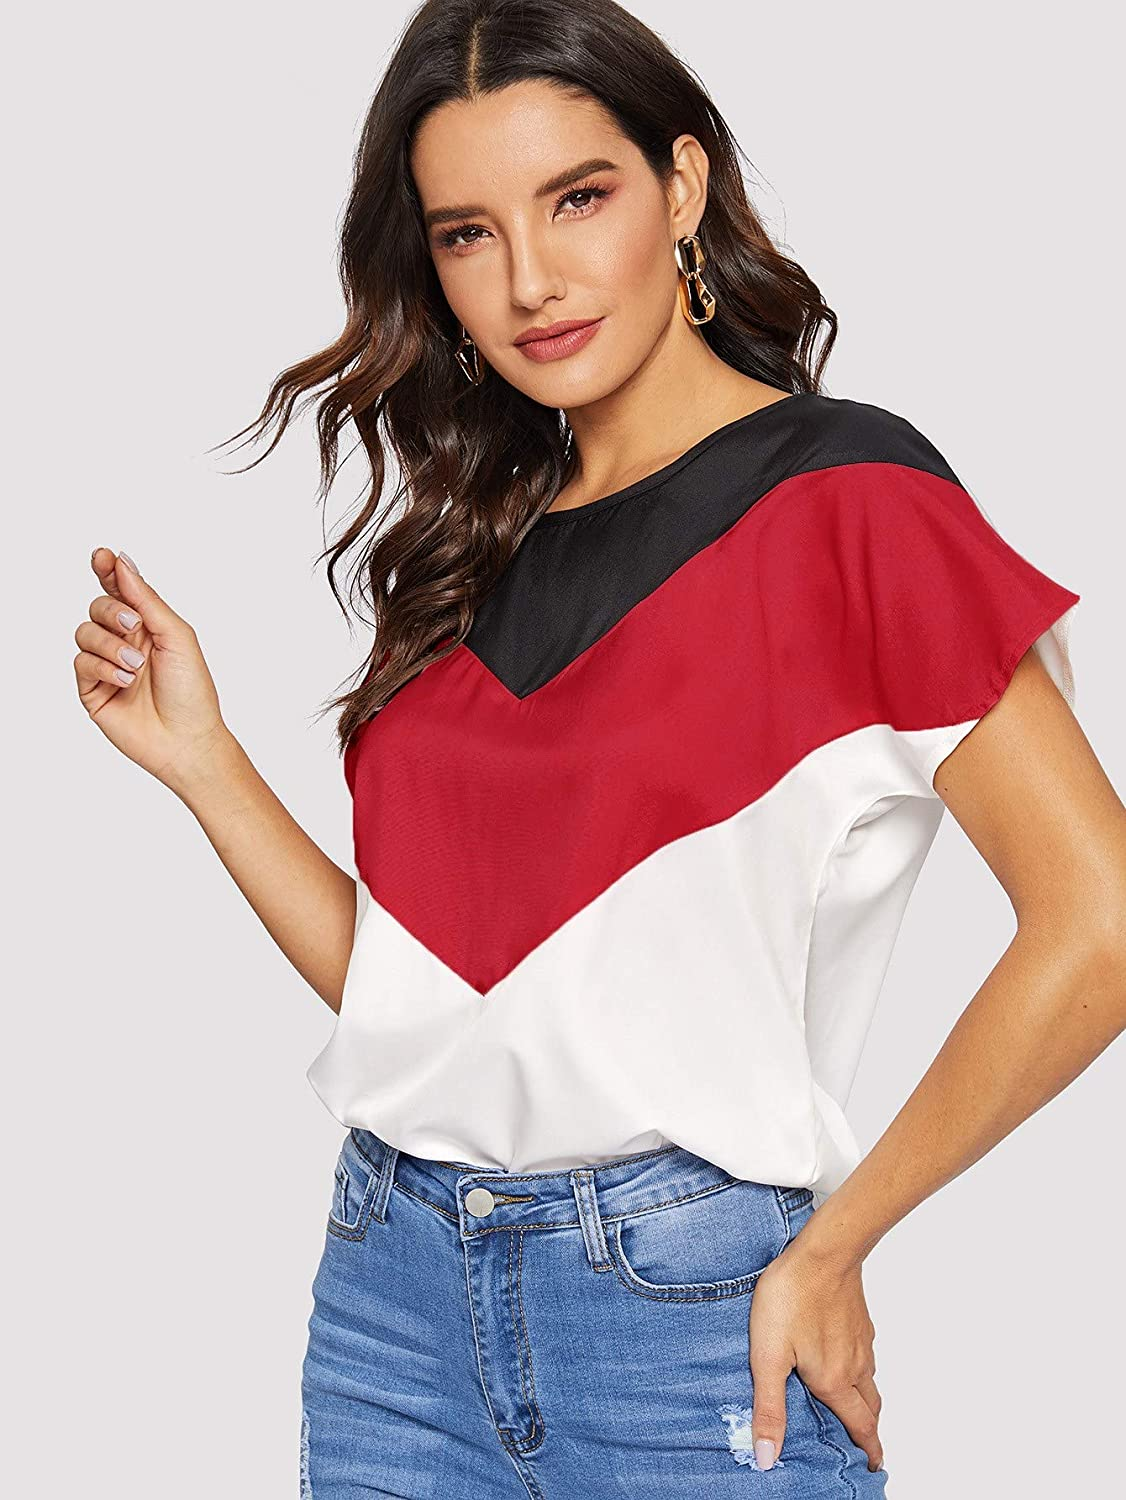 Romwe Women Color Block Blouse Short Sleeve Casual Tee Shirts Tunic Tops